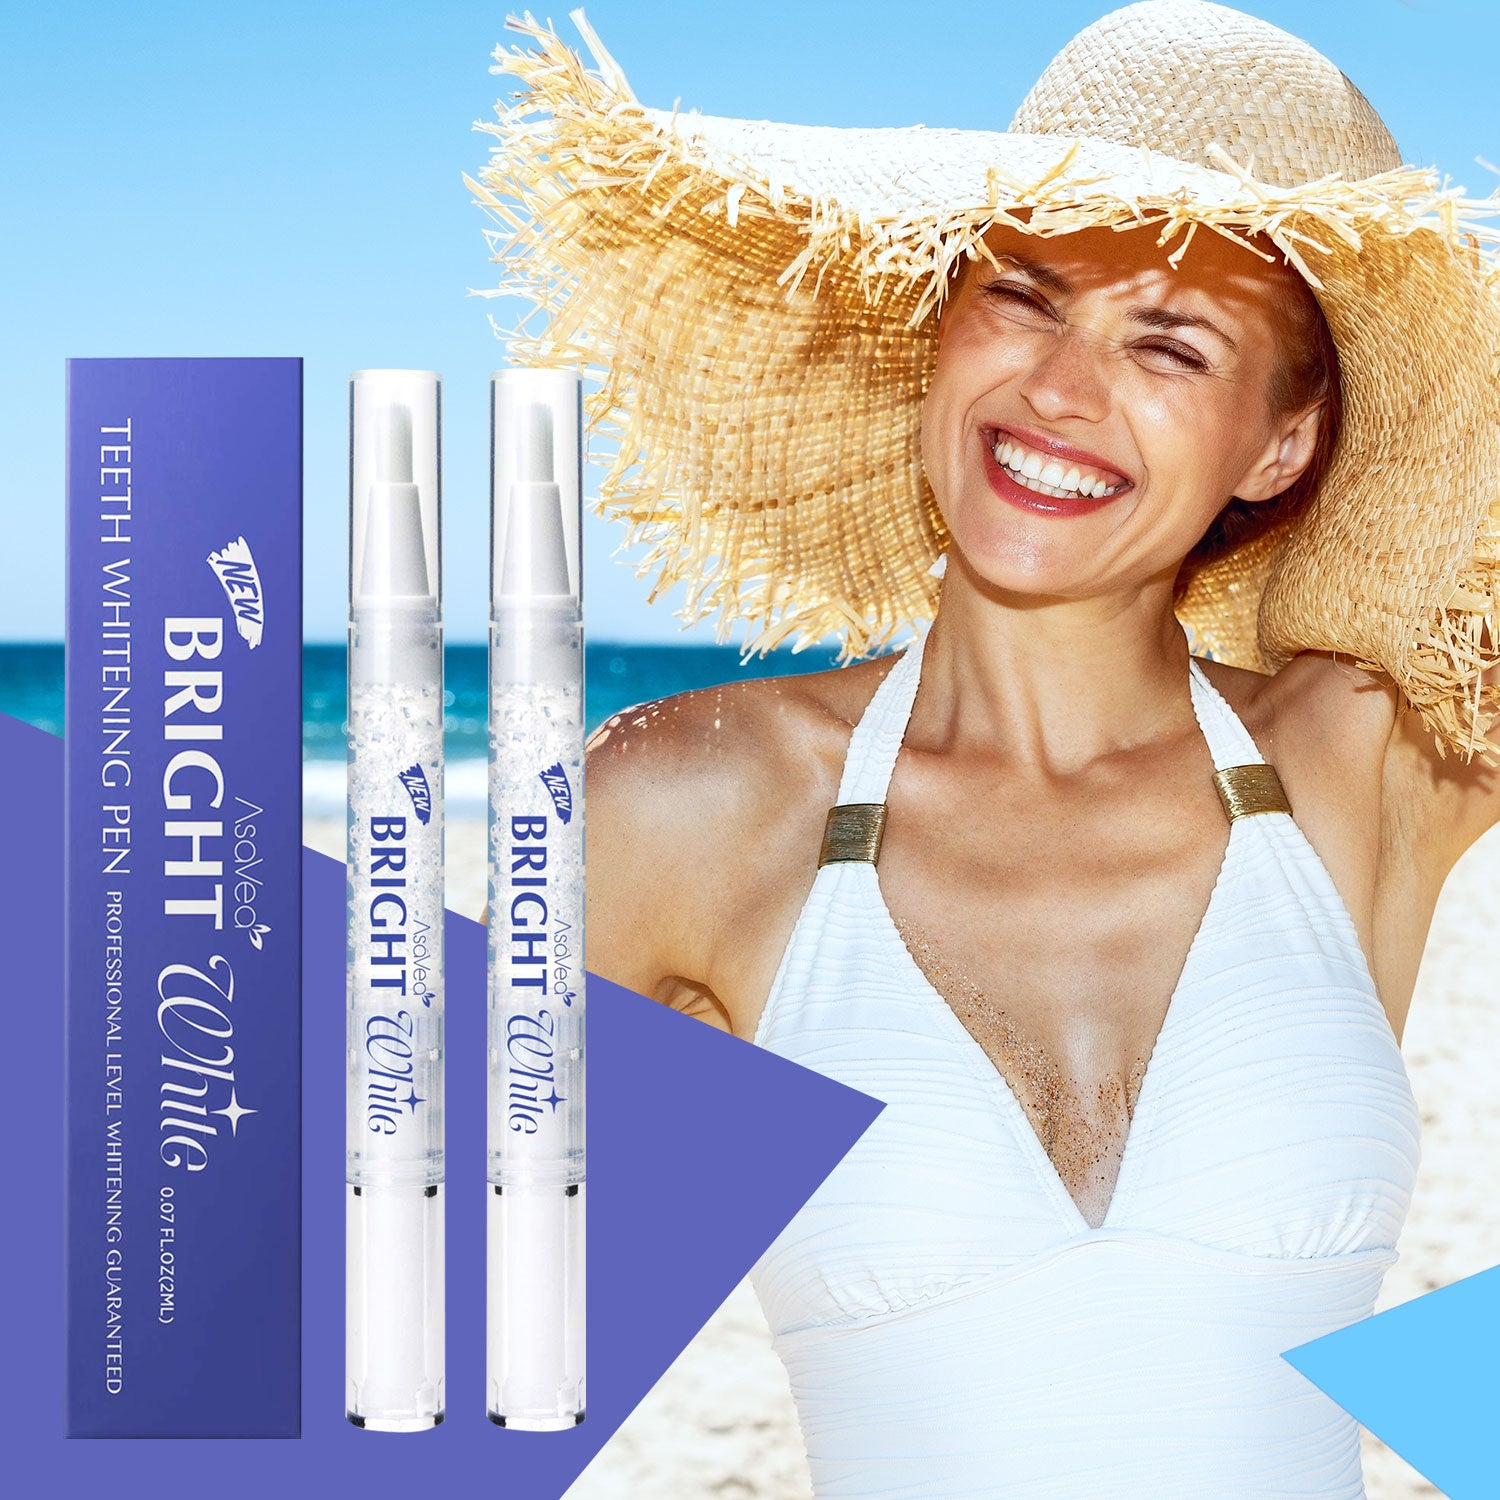 Asavea Teeth Whitening Pen 2 Pens More Than 20 Uses Ezyshoppee